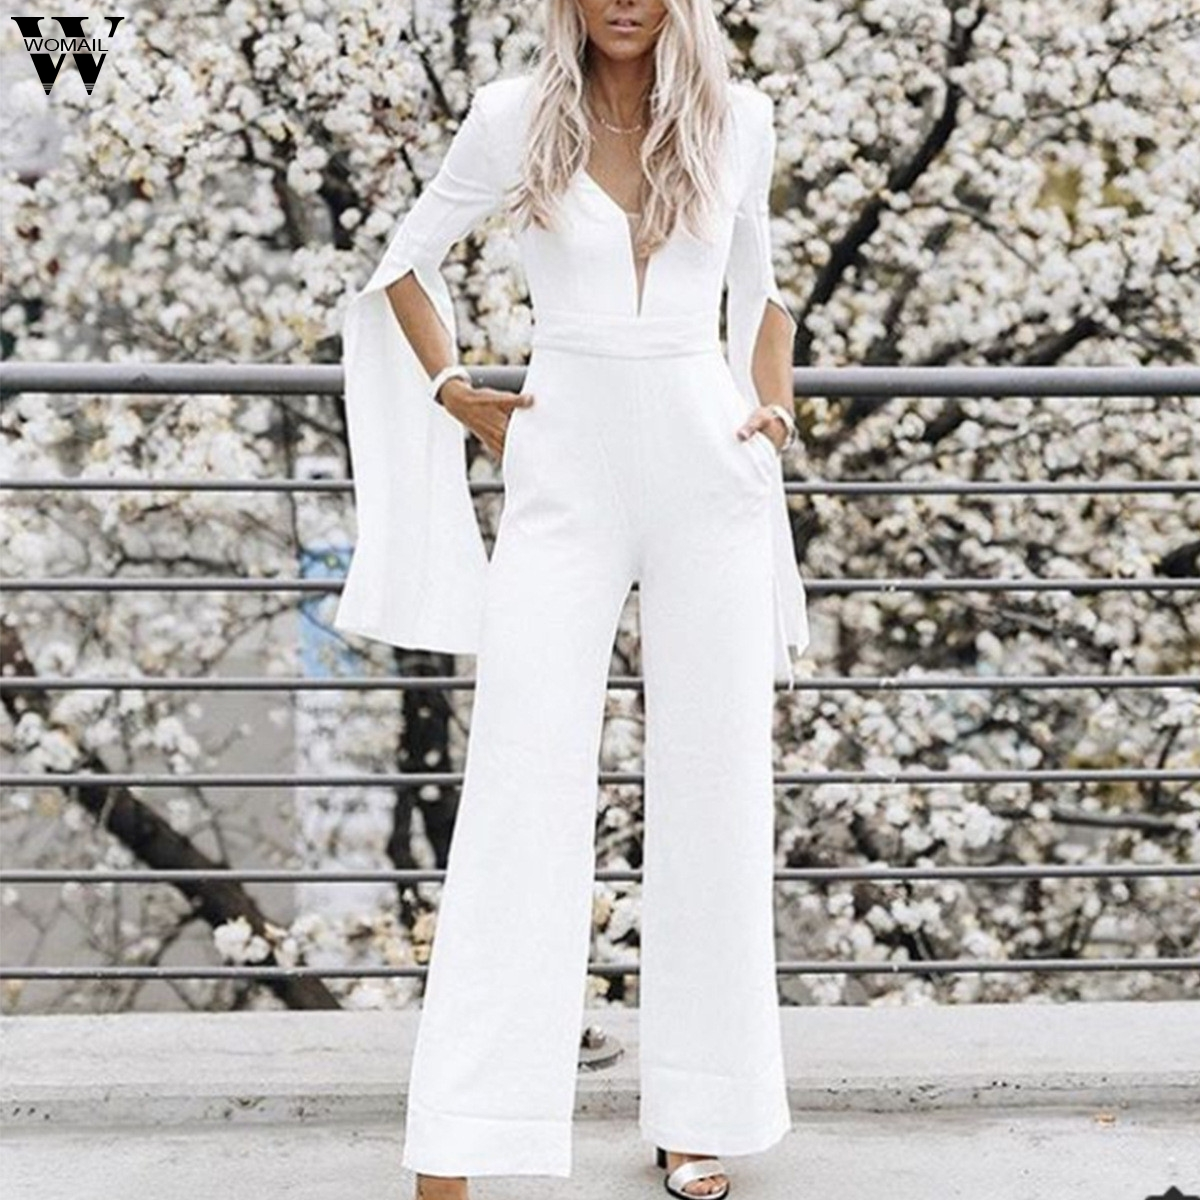 Womail Jumpsuit Women Formal Elegant Long Pant Trendy White Overalls For Women V-neck Jumpsuits Rompers Outfit Fashionable Party